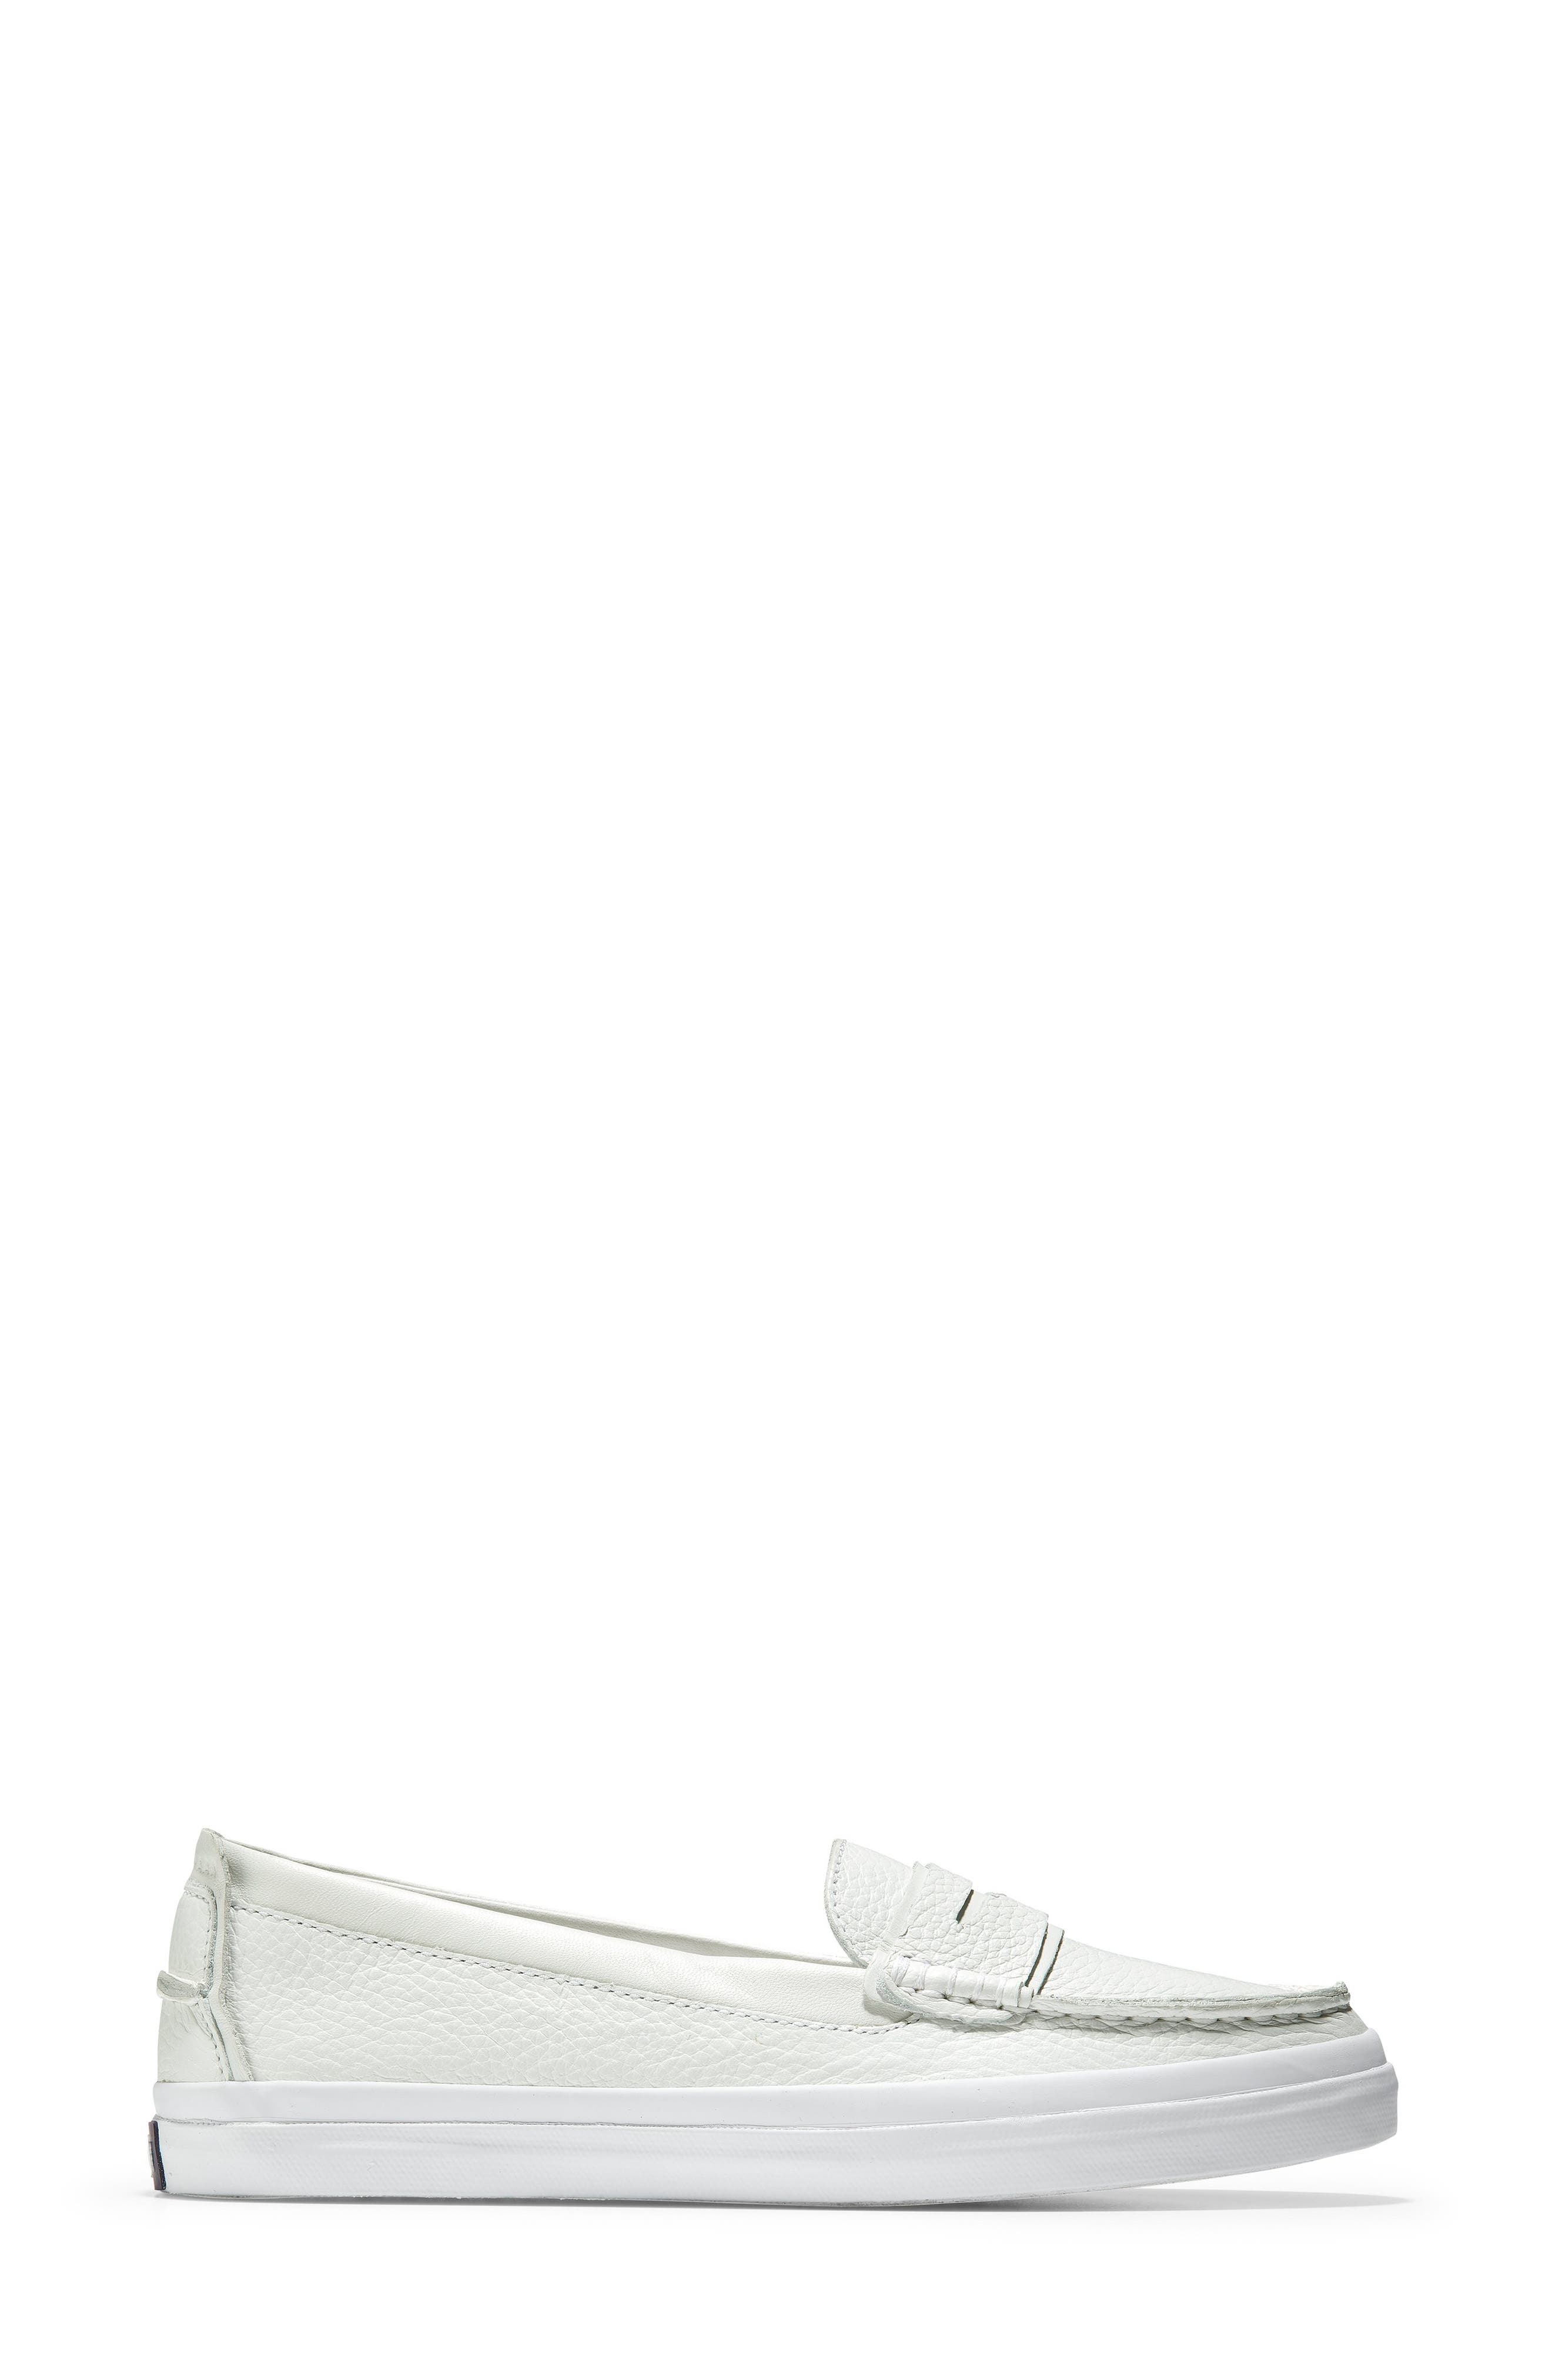 COLE HAAN, Pinch LX Loafer, Alternate thumbnail 3, color, OPTIC WHITE LEATHER